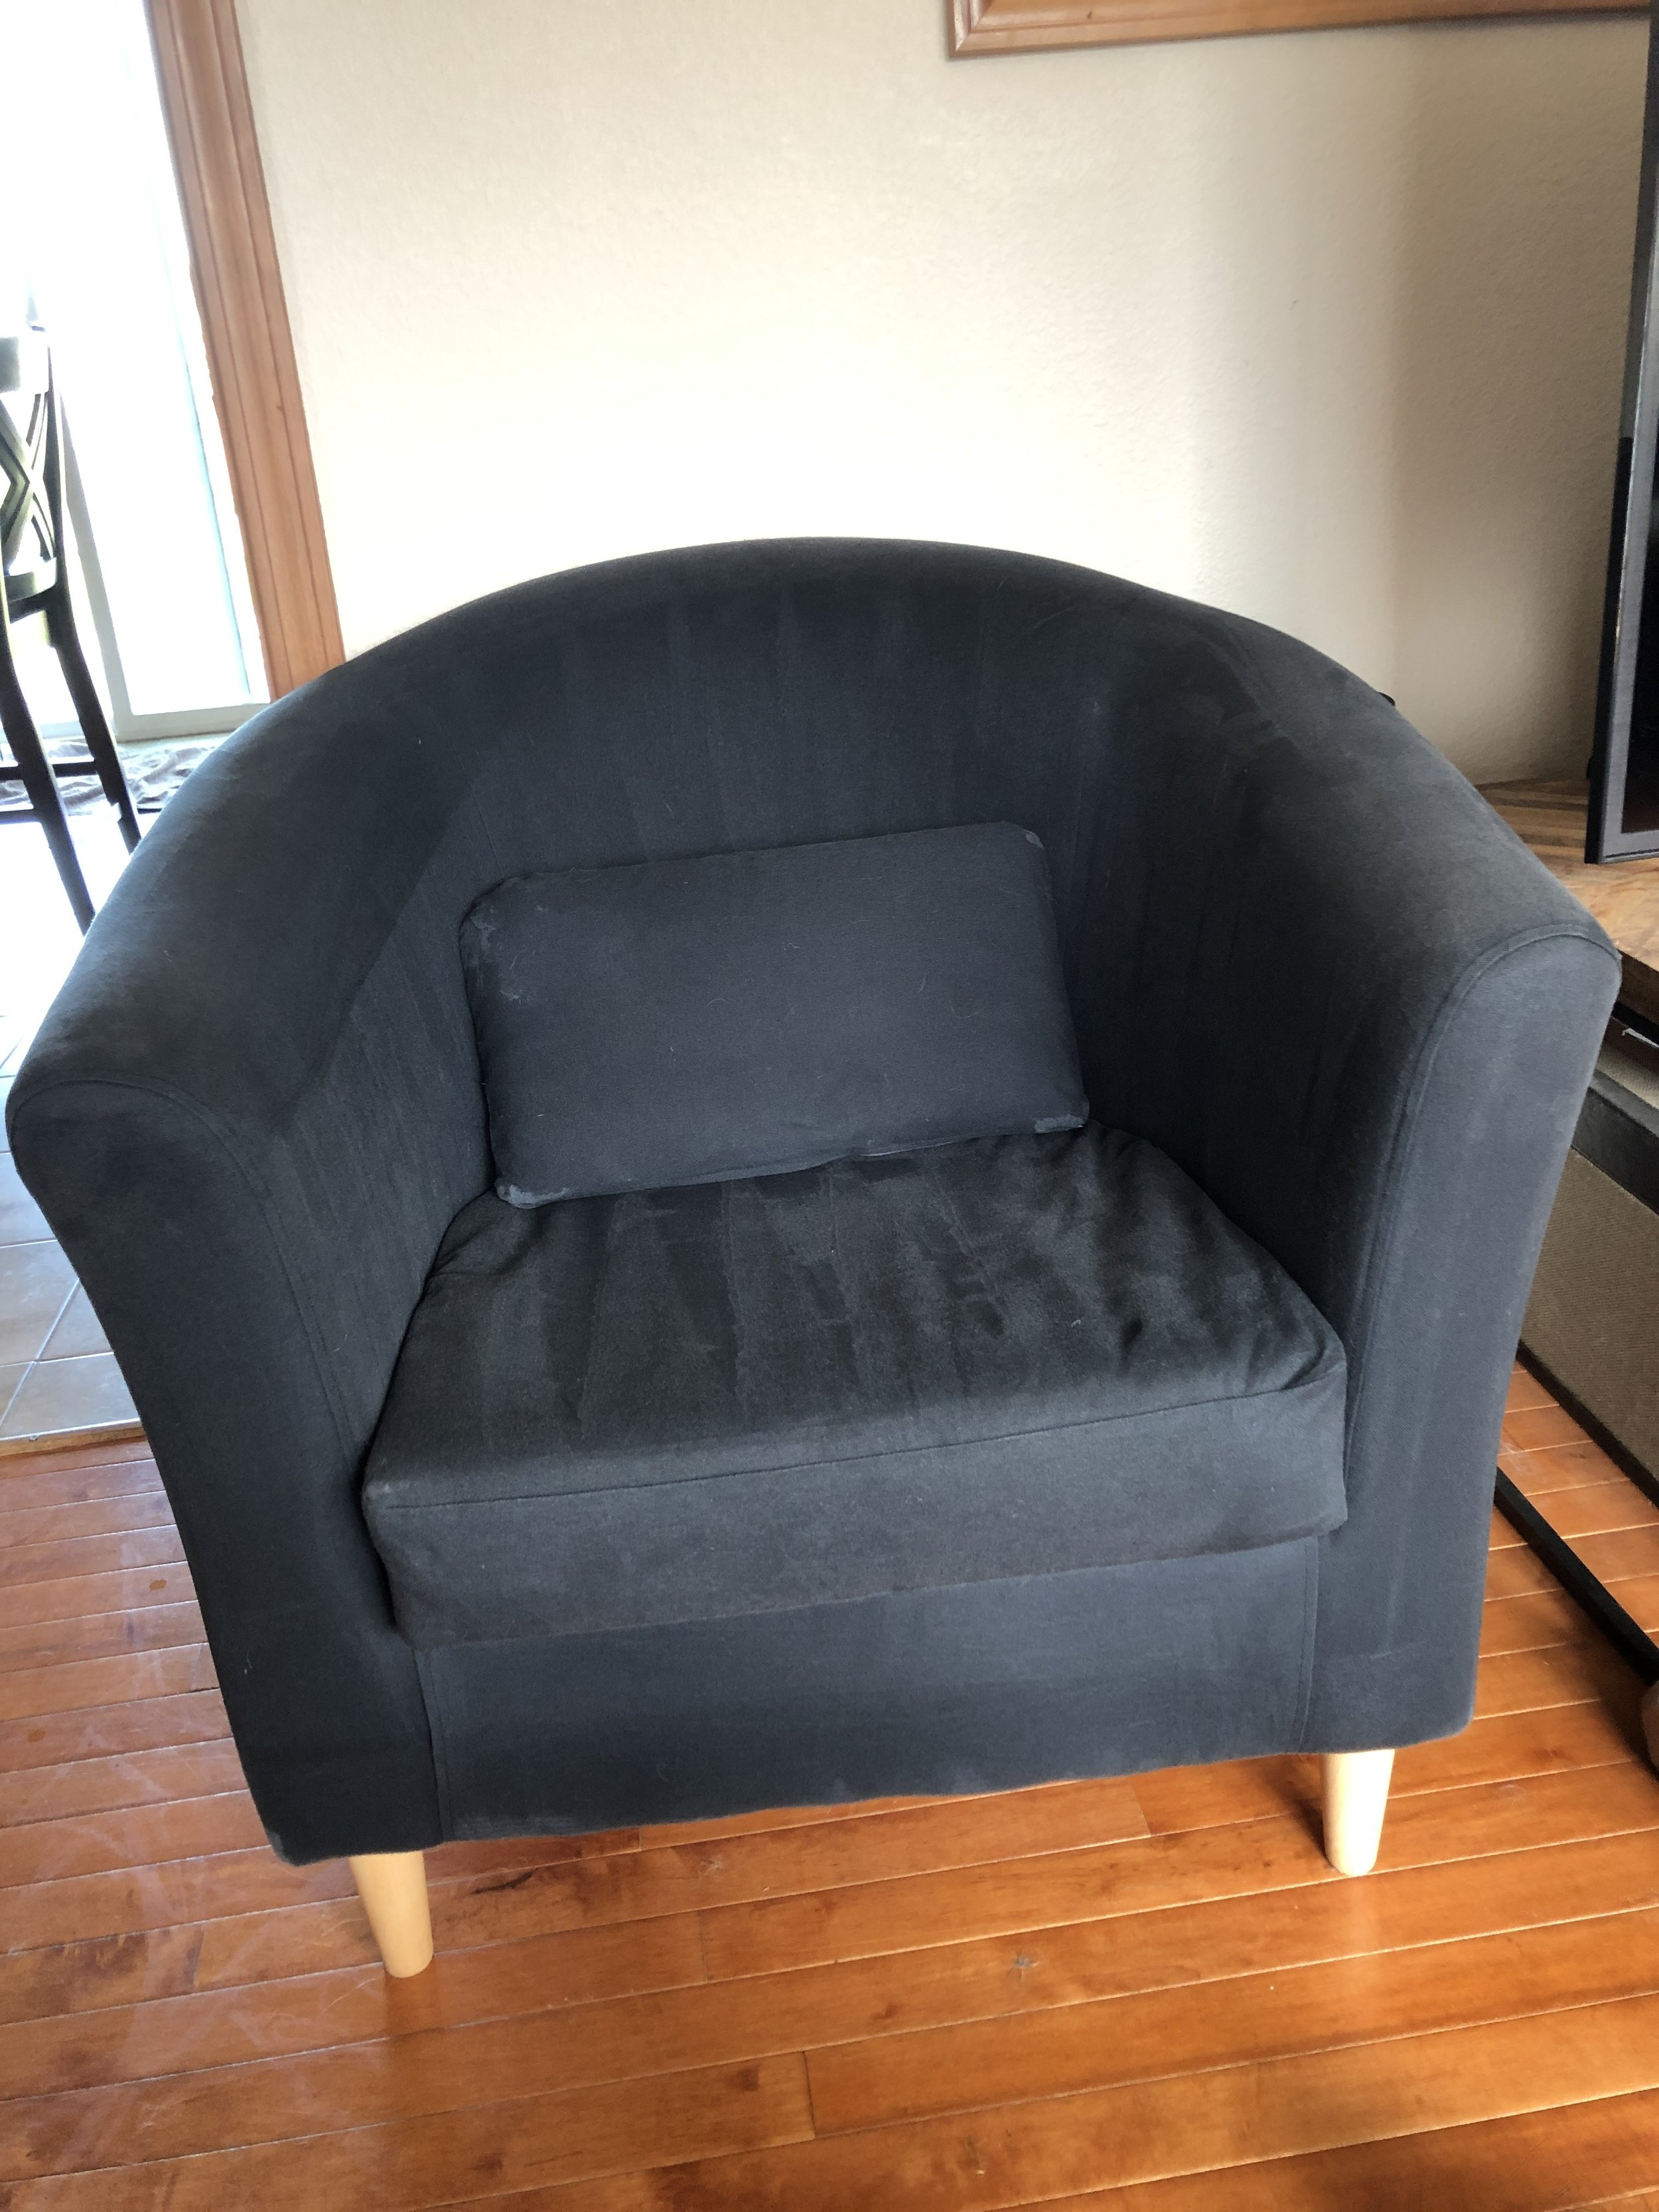 Upholstery cleaning Everett after